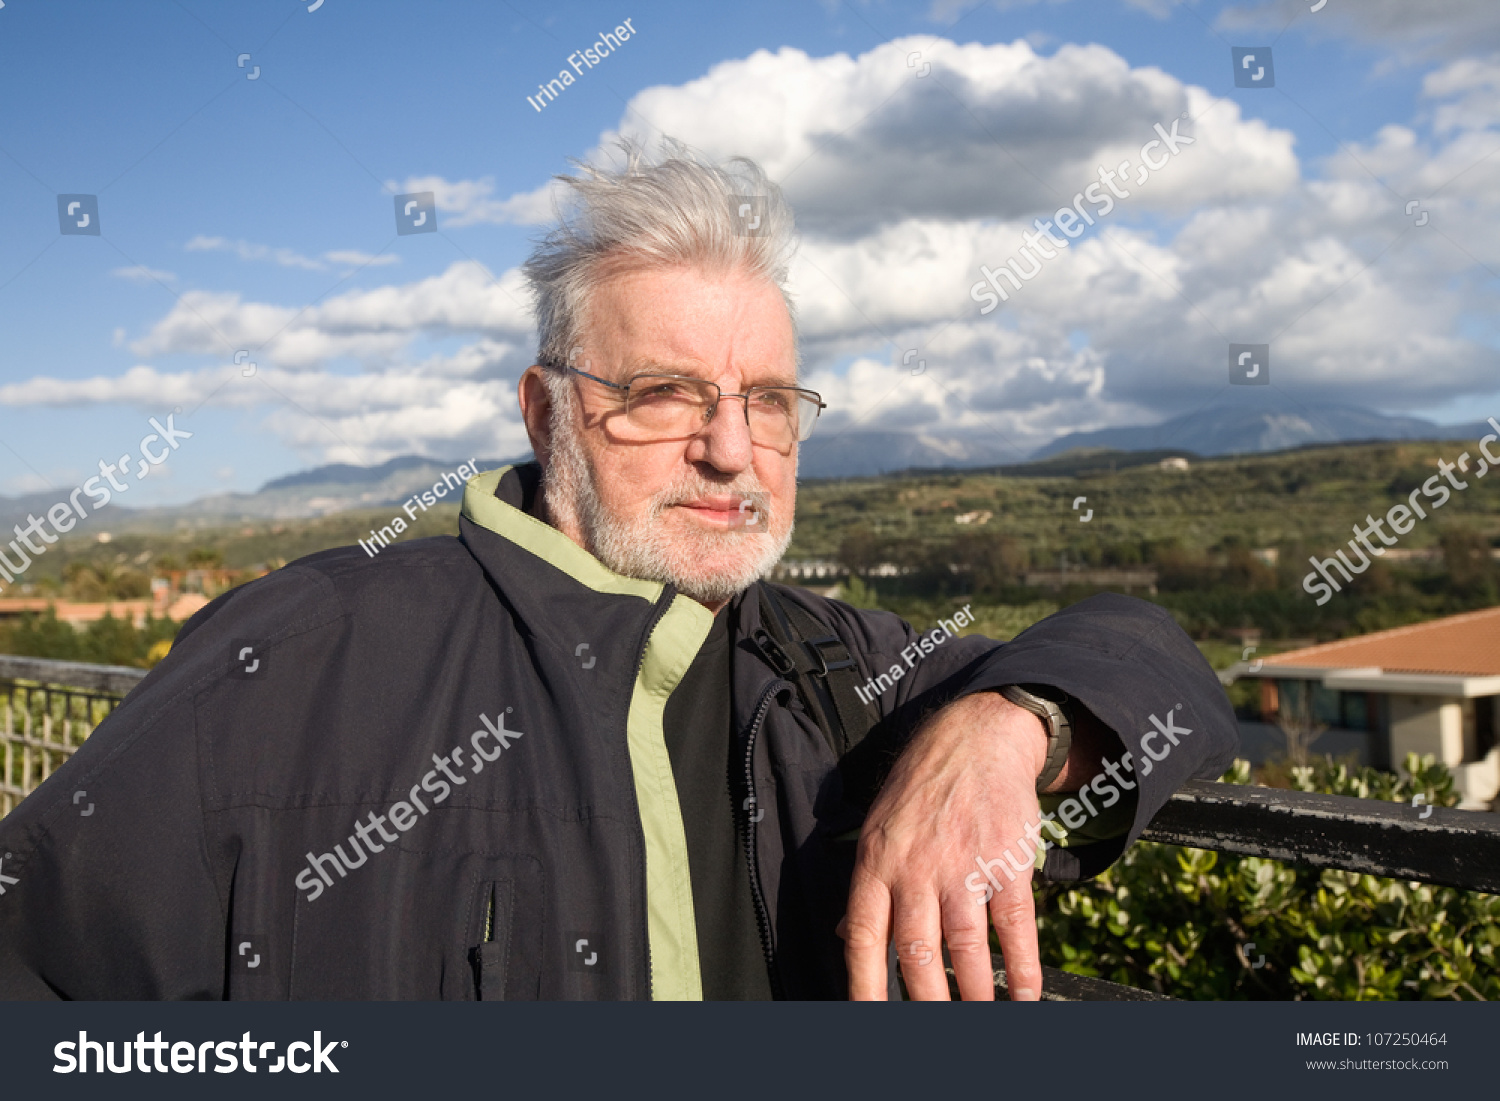 etna men Shop for etna clothing & apparel on zazzle check out our t-shirts, polo shirts, hoodies, & more great items.